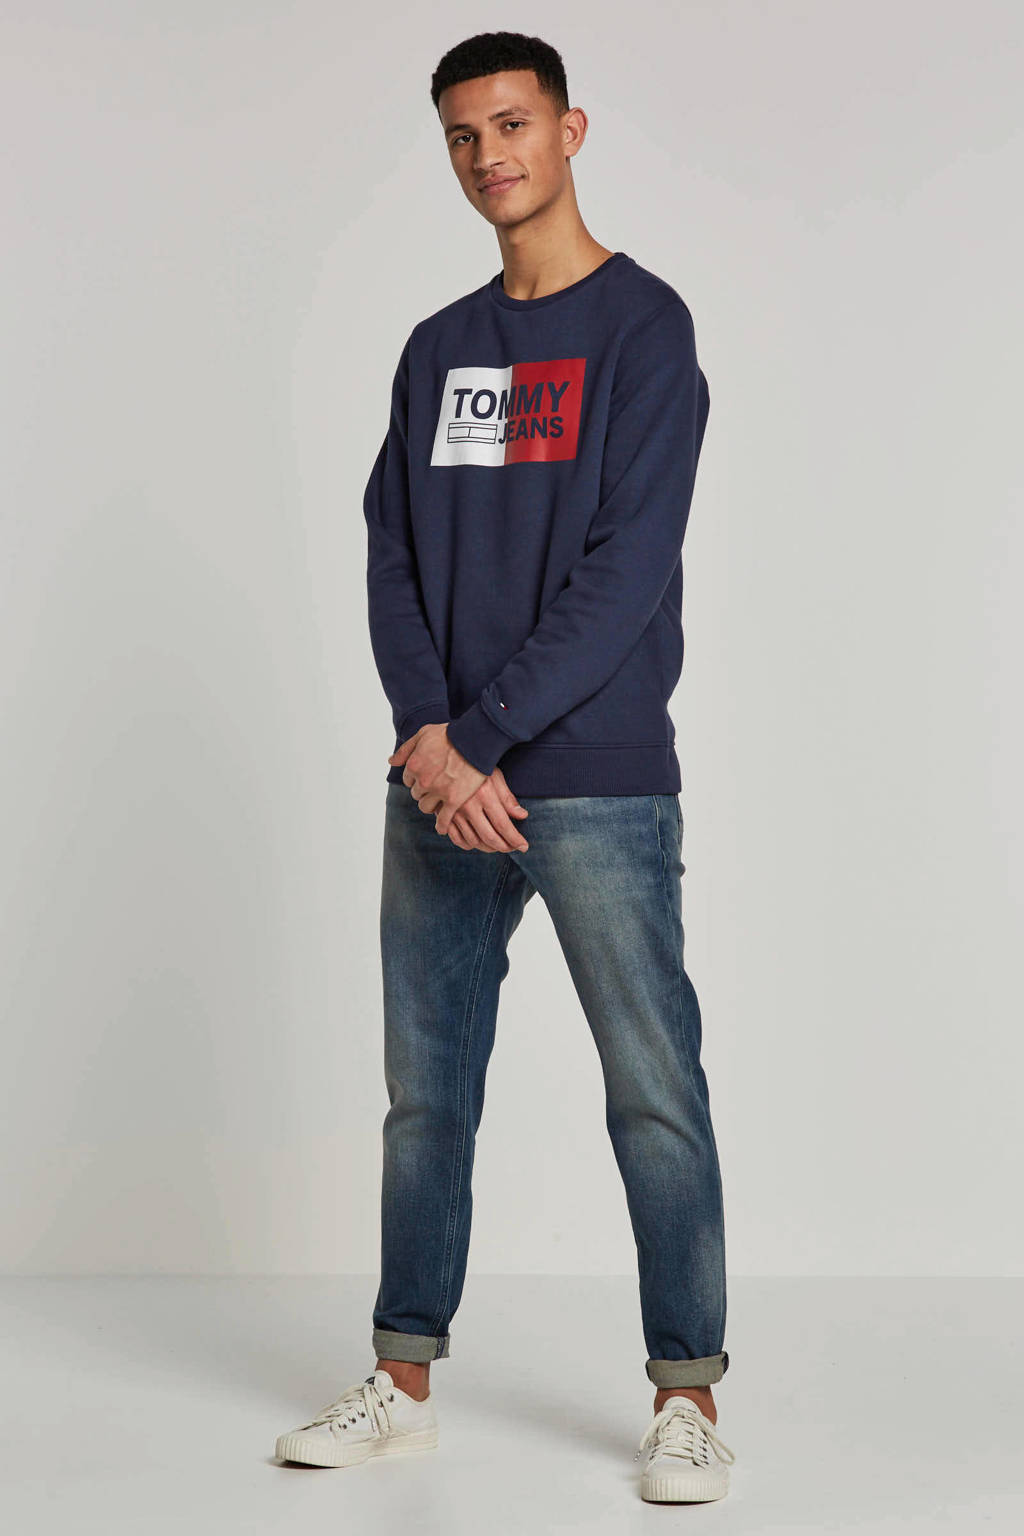 Tommy Jeans sweater, Donkerblauw